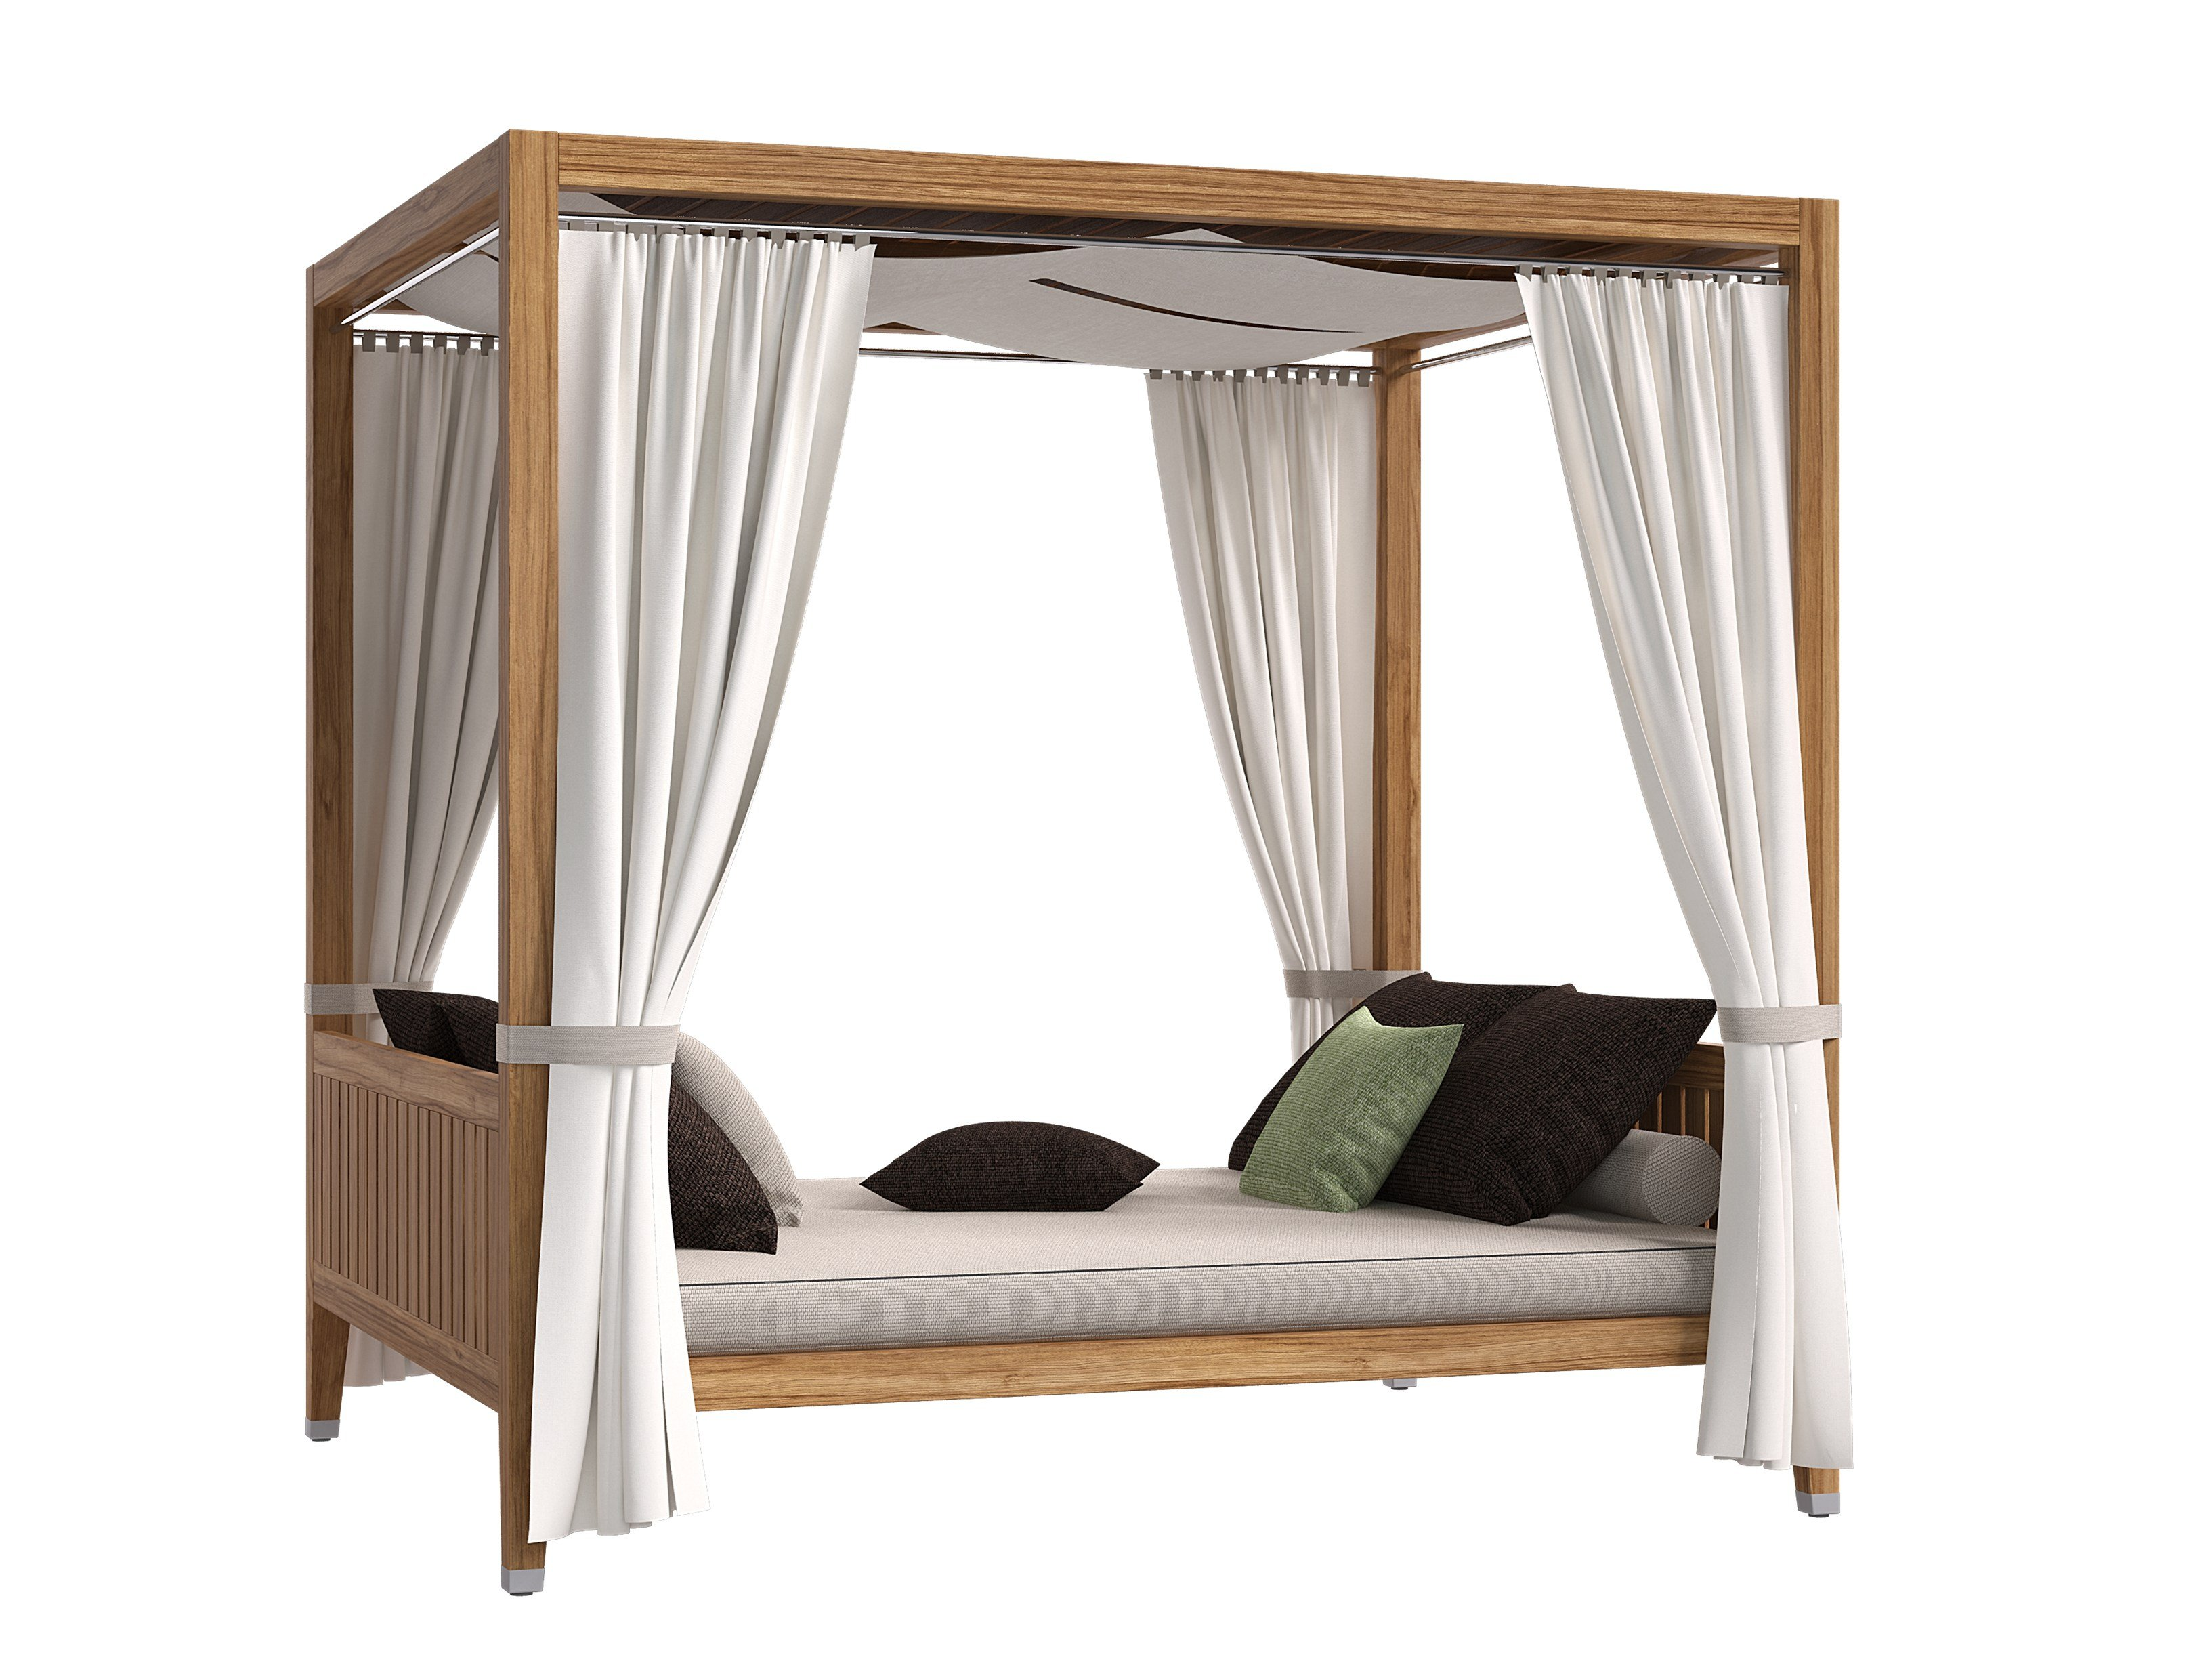 desert garden bed desert collection by atmosphera. Black Bedroom Furniture Sets. Home Design Ideas